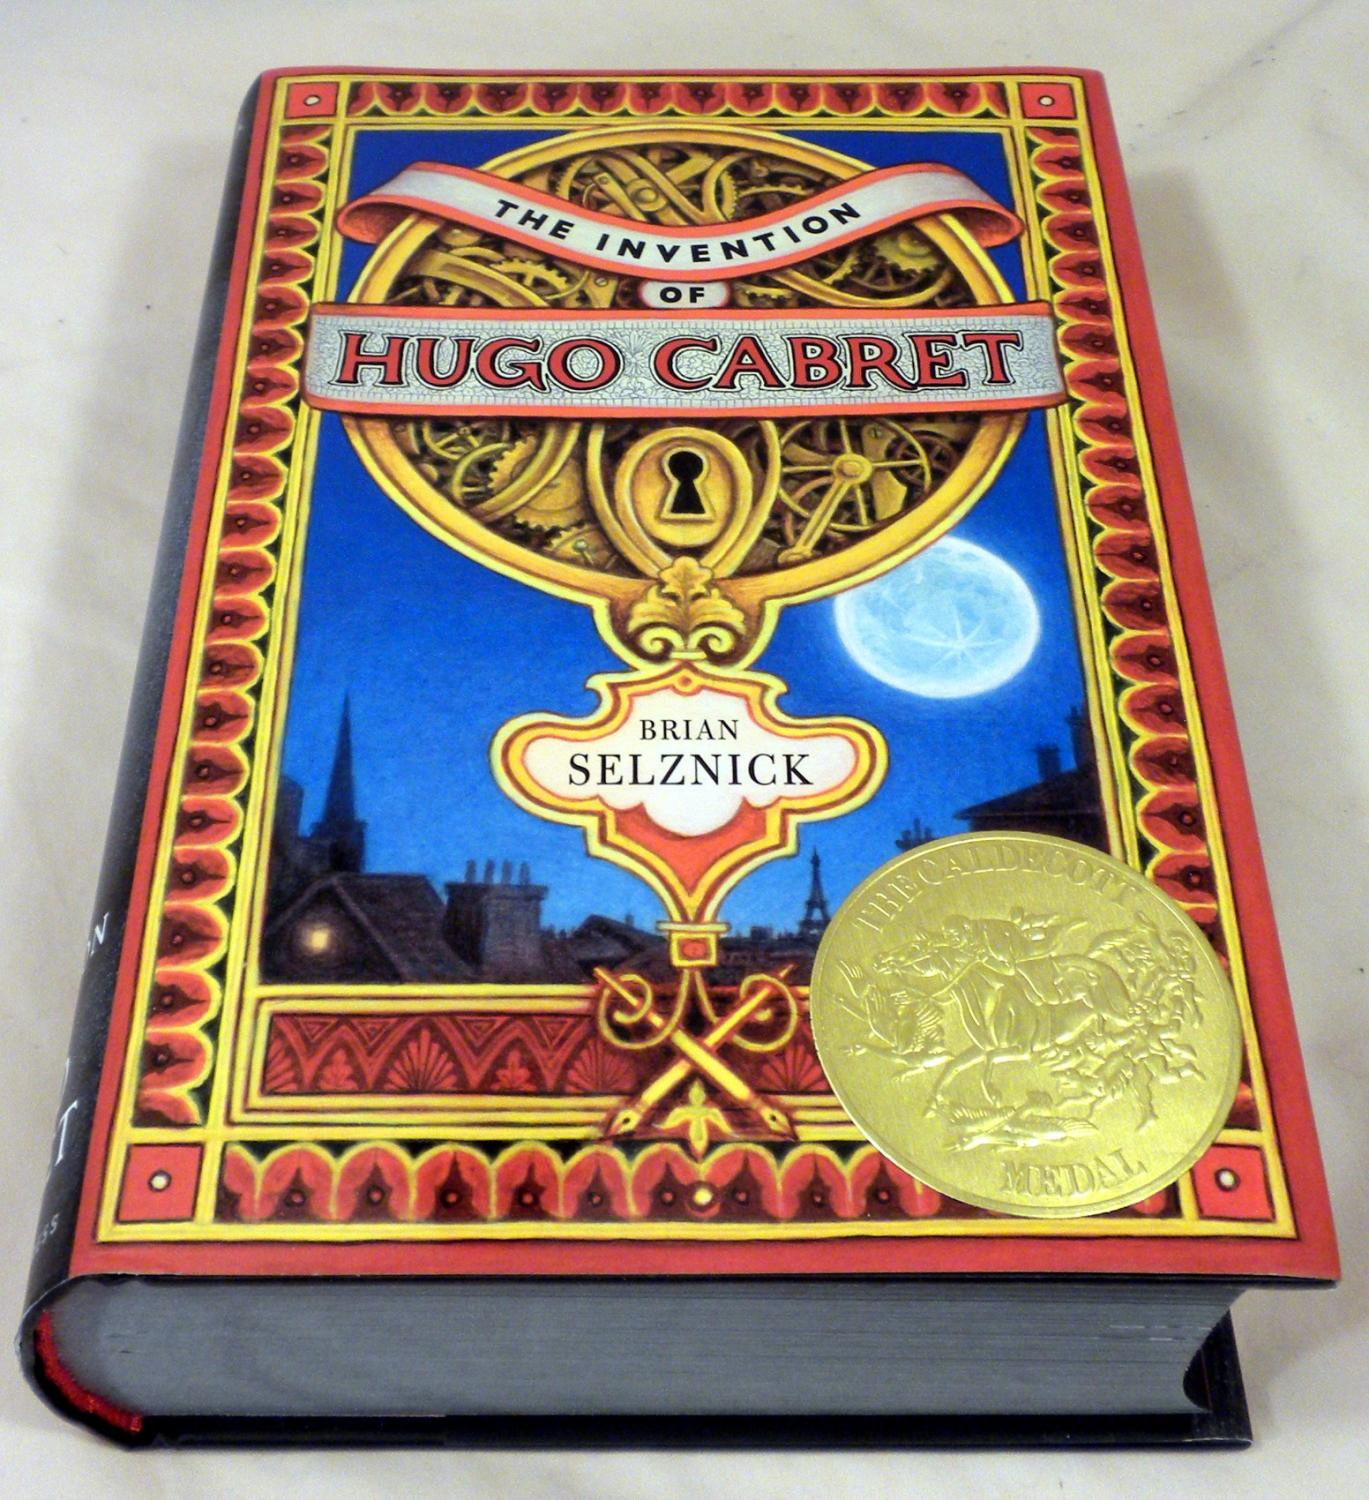 Hugo Cabret Libro The Invention Of Hugo Cabret De Brian Selznick Scholastic Press